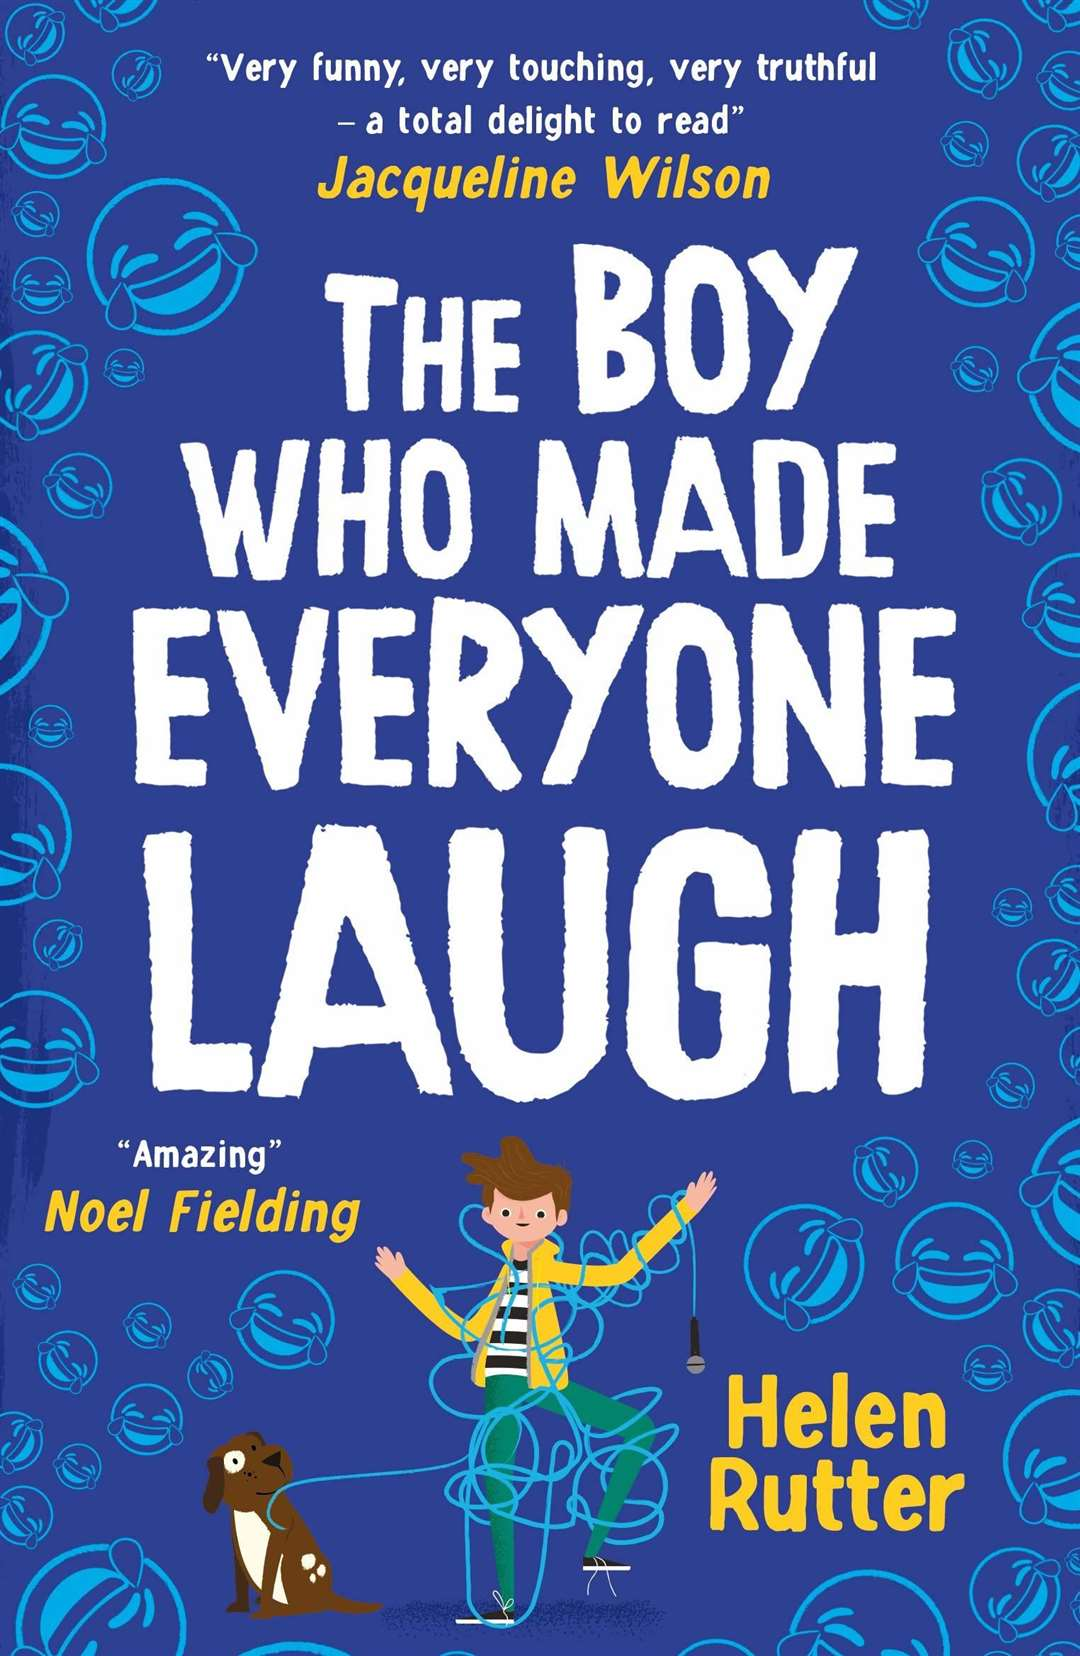 The Boy Who Made Everyone Laugh by Helen Rutter (45057024)